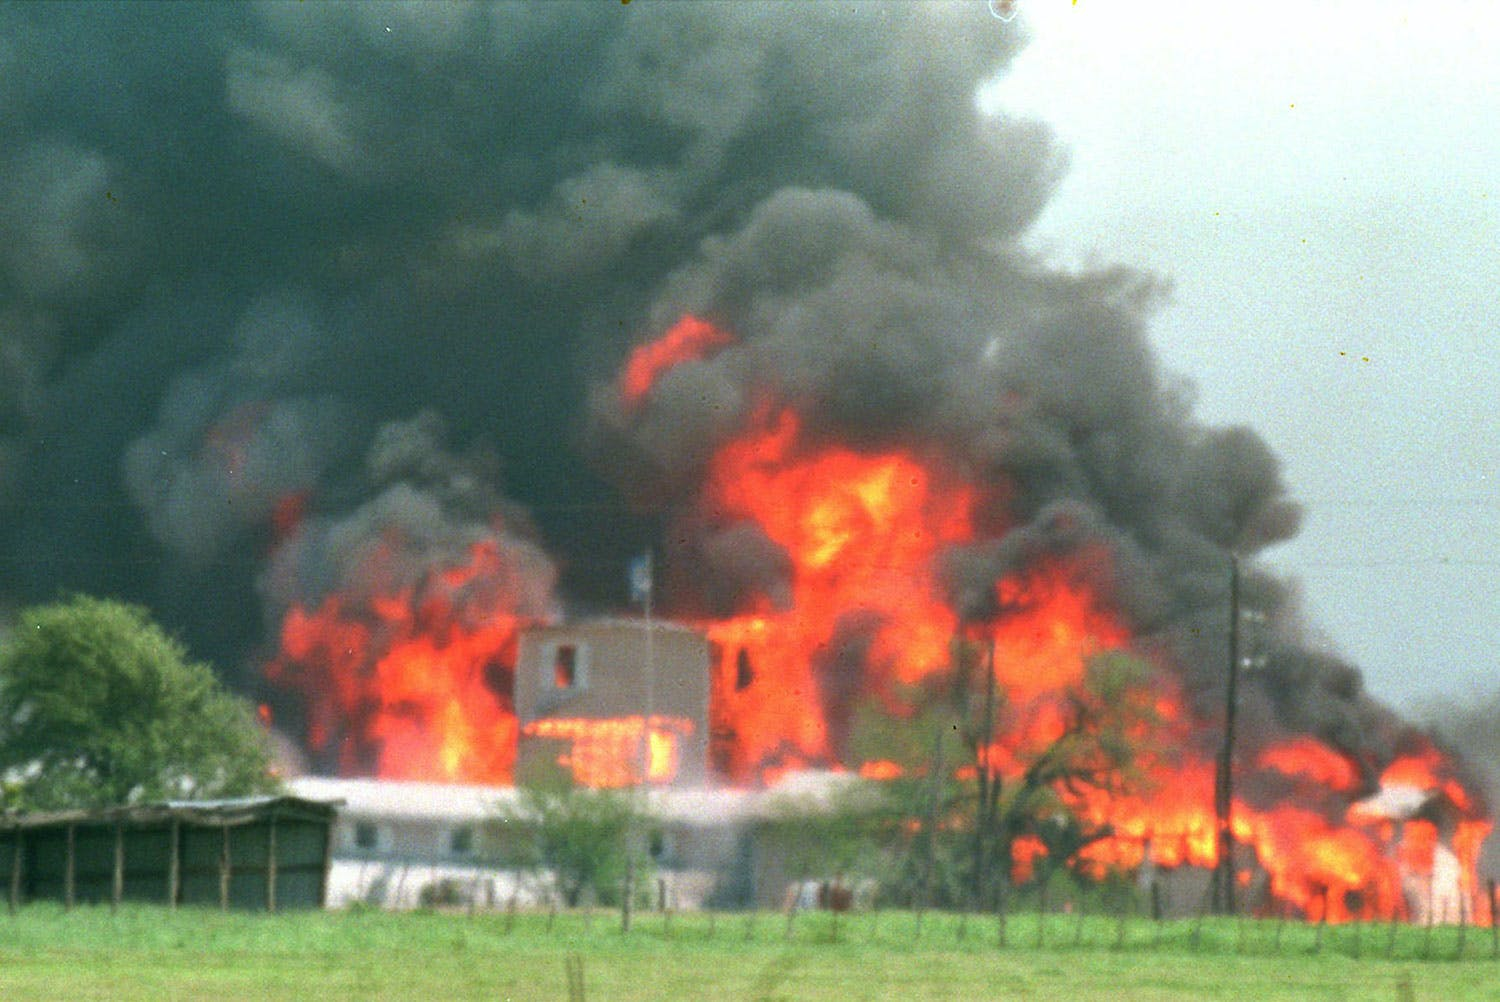 Branch Davidian Compound Flames